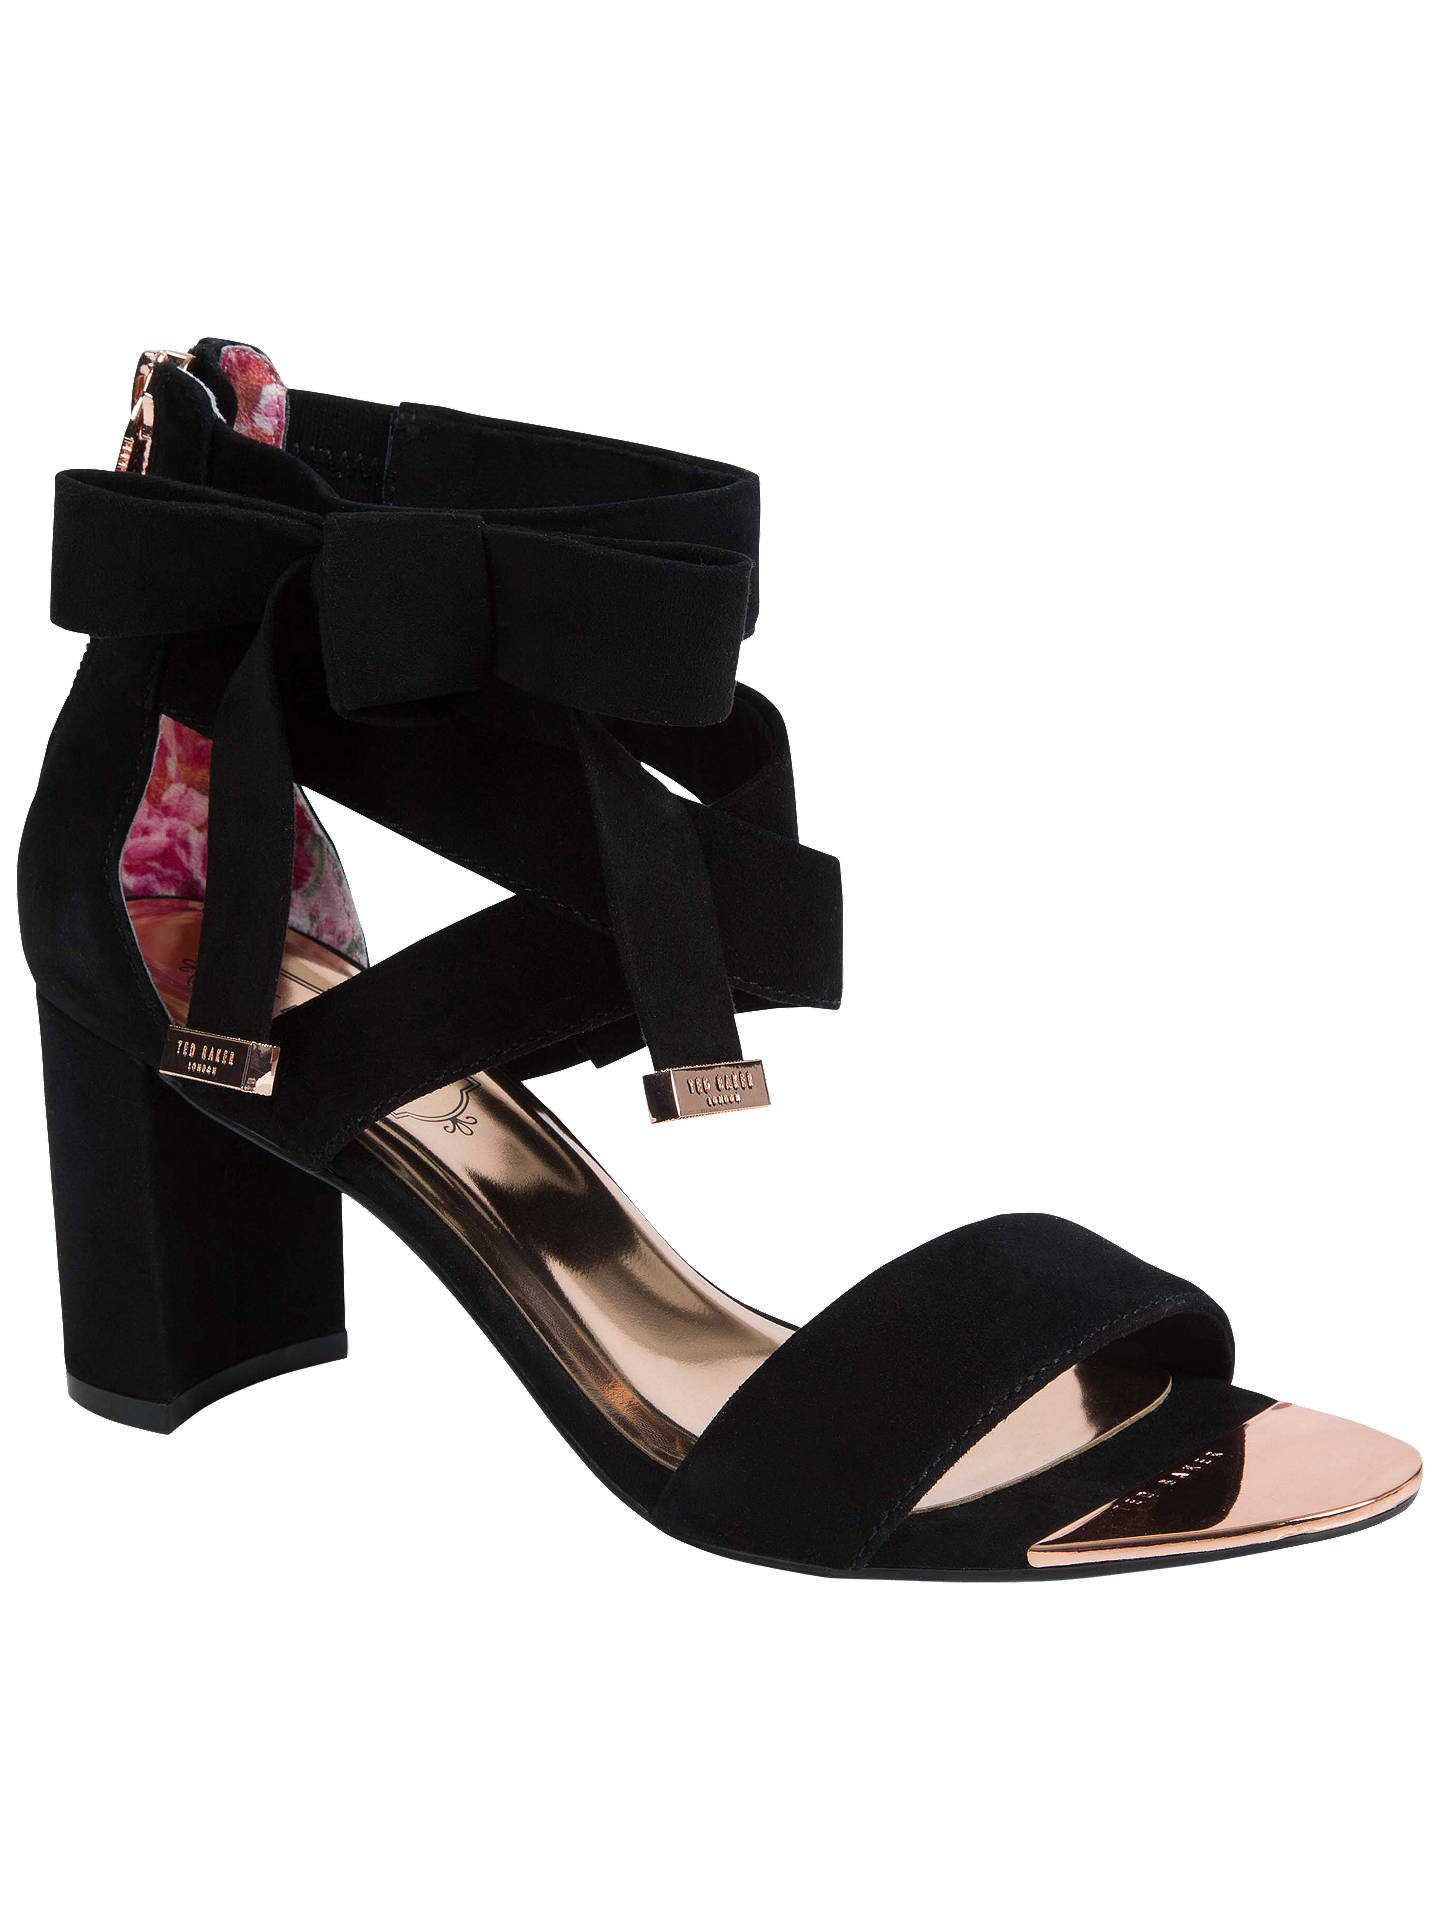 b6f863b33ffc Ted Baker Noxen 2 Cross Strap Bow Sandals at John Lewis   Partners